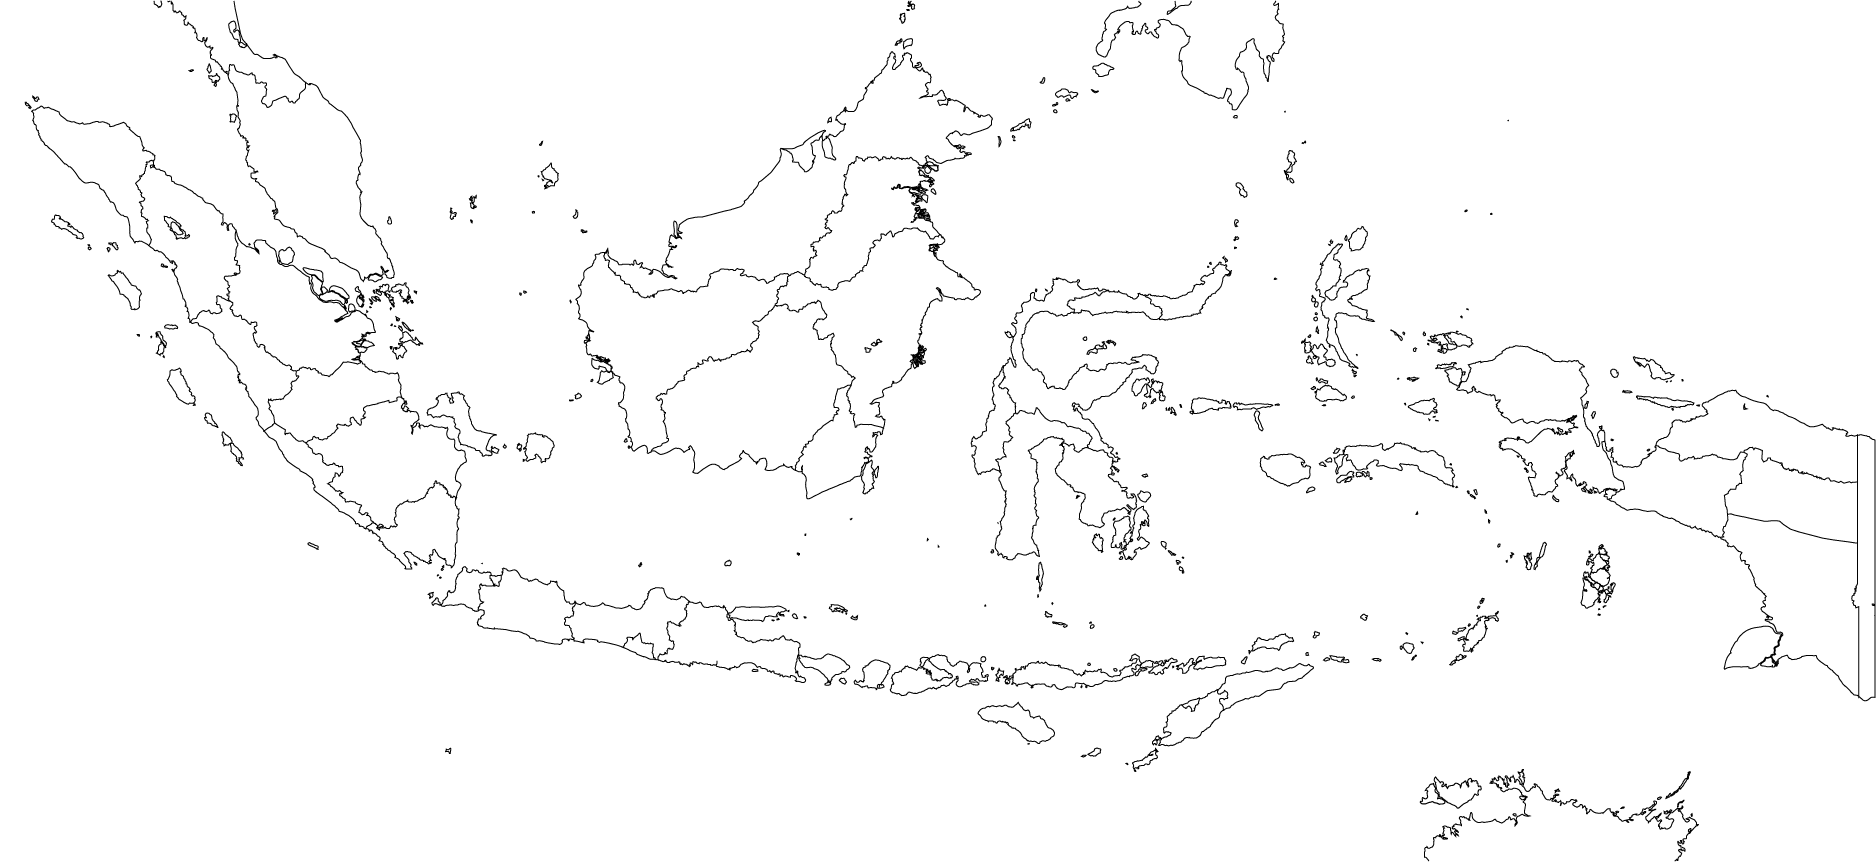 http://upload.wikimedia.org/wikipedia/commons/3/39/Indonesia_provinces_blank.png